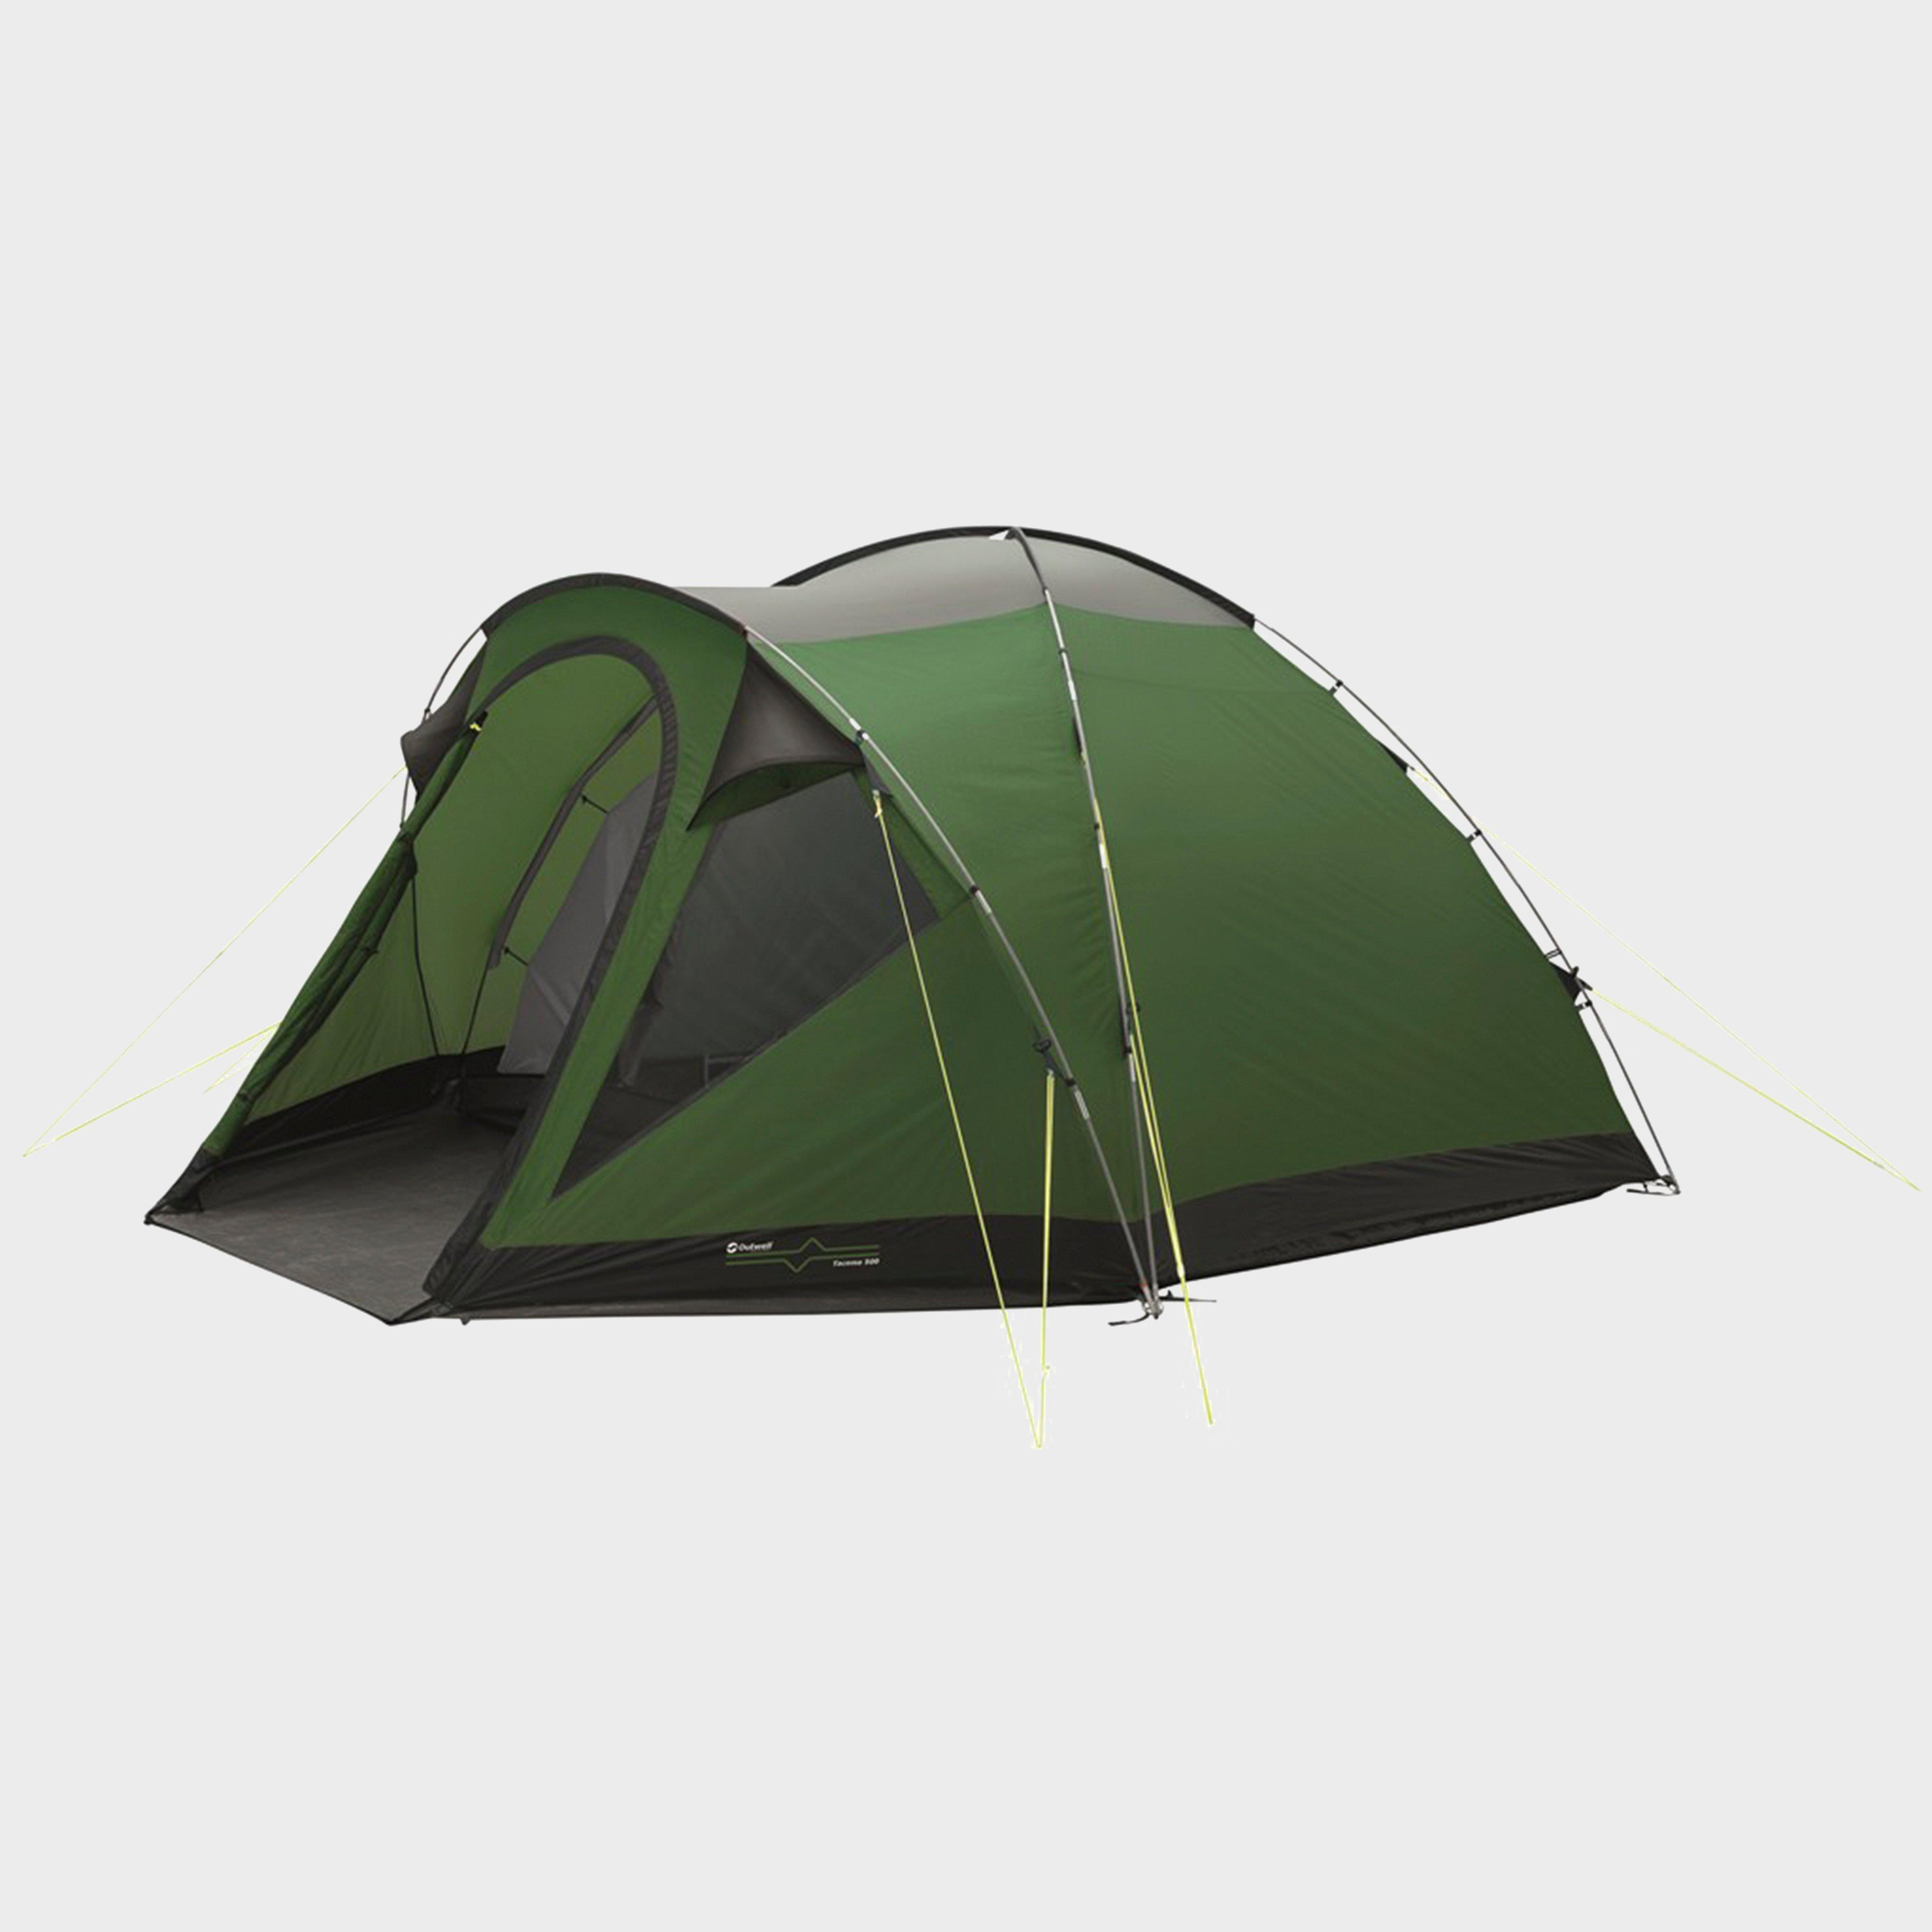 & Outwell Tacoma 500 5 Person Tent